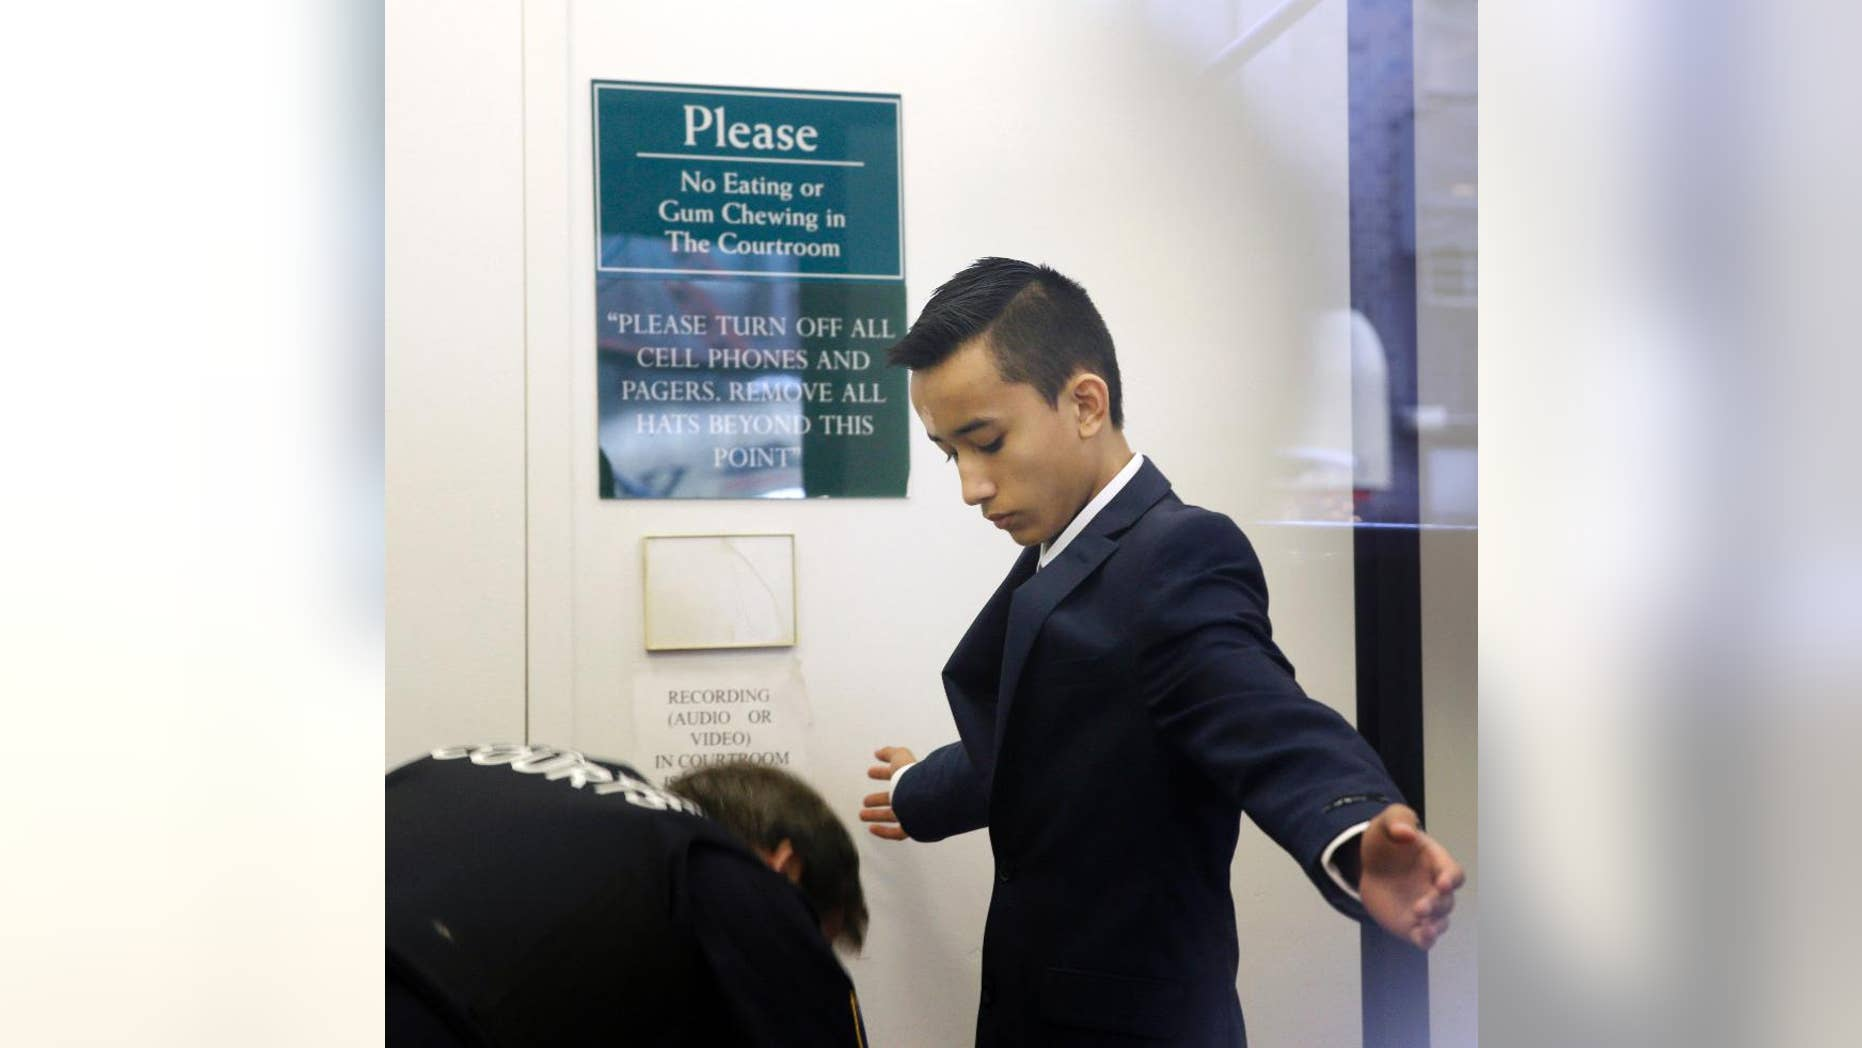 FILE- In this April 2, 2014 file photo, Justin Casquejo passes through security at a courthouse in New York. The teenage daredevil who climbed the World Trade Center's centerpiece tower in 2014 has surrendered to police on Friday, Dec. 2, 2016, after videos posted on social media showed him dangling from other Manhattan skyscrapers. (AP Photo/Seth Wenig, File)